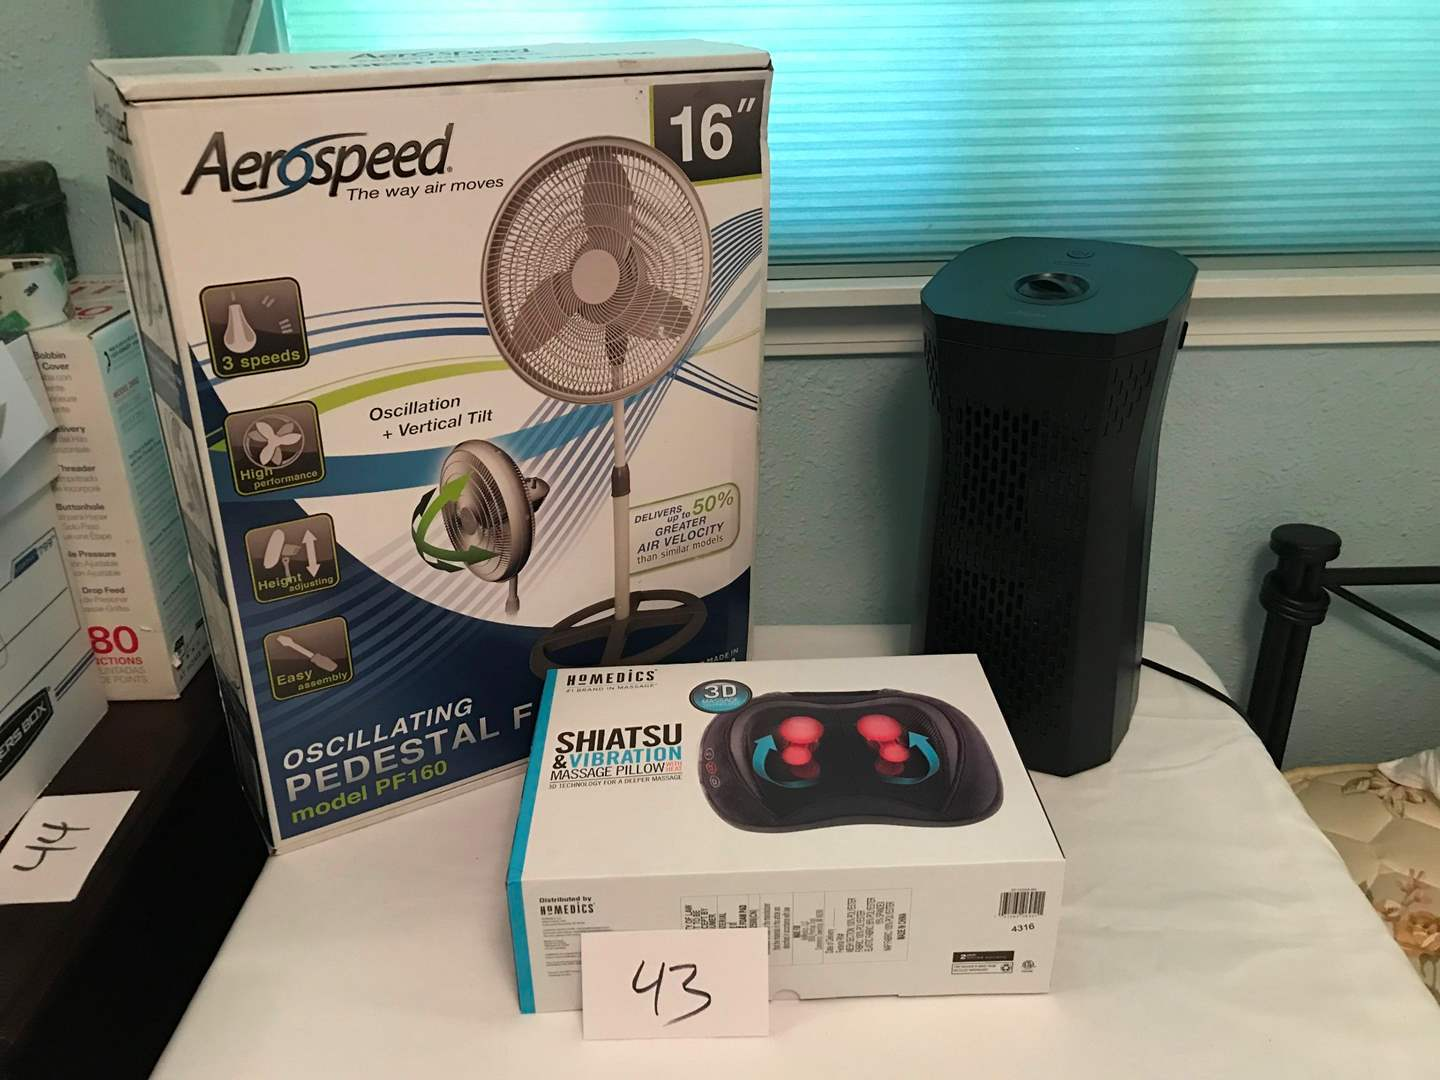 "Lot # 43 - NIB Homedics massage pillow, Hunter air purifier, NIB Aero speed PF60 16"" pedestal fan (main image)"